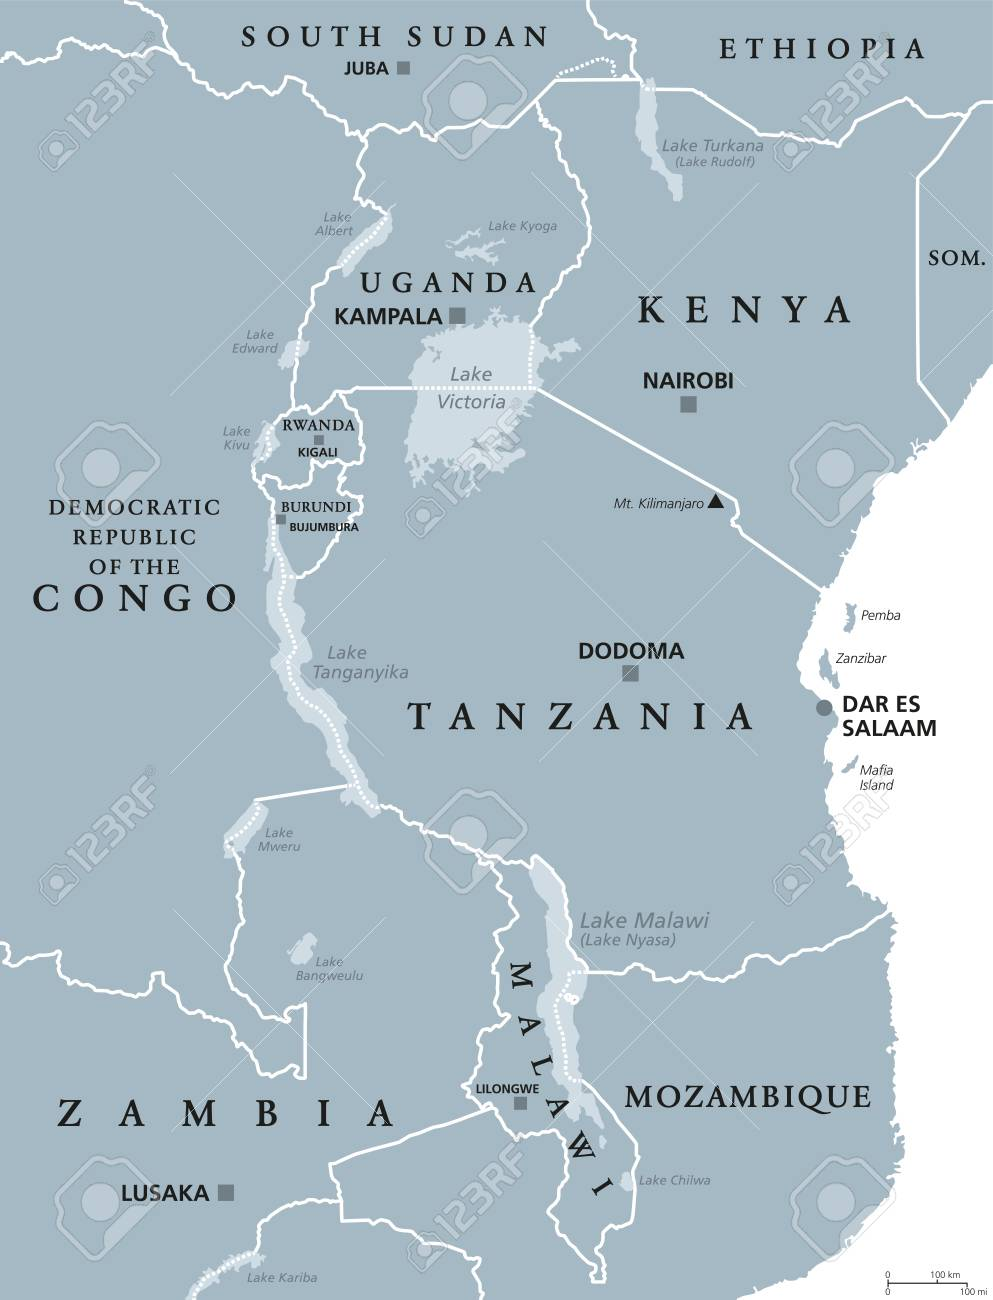 Lake Malawi Africa Map.African Great Lakes Political Map With Capitals And Borders